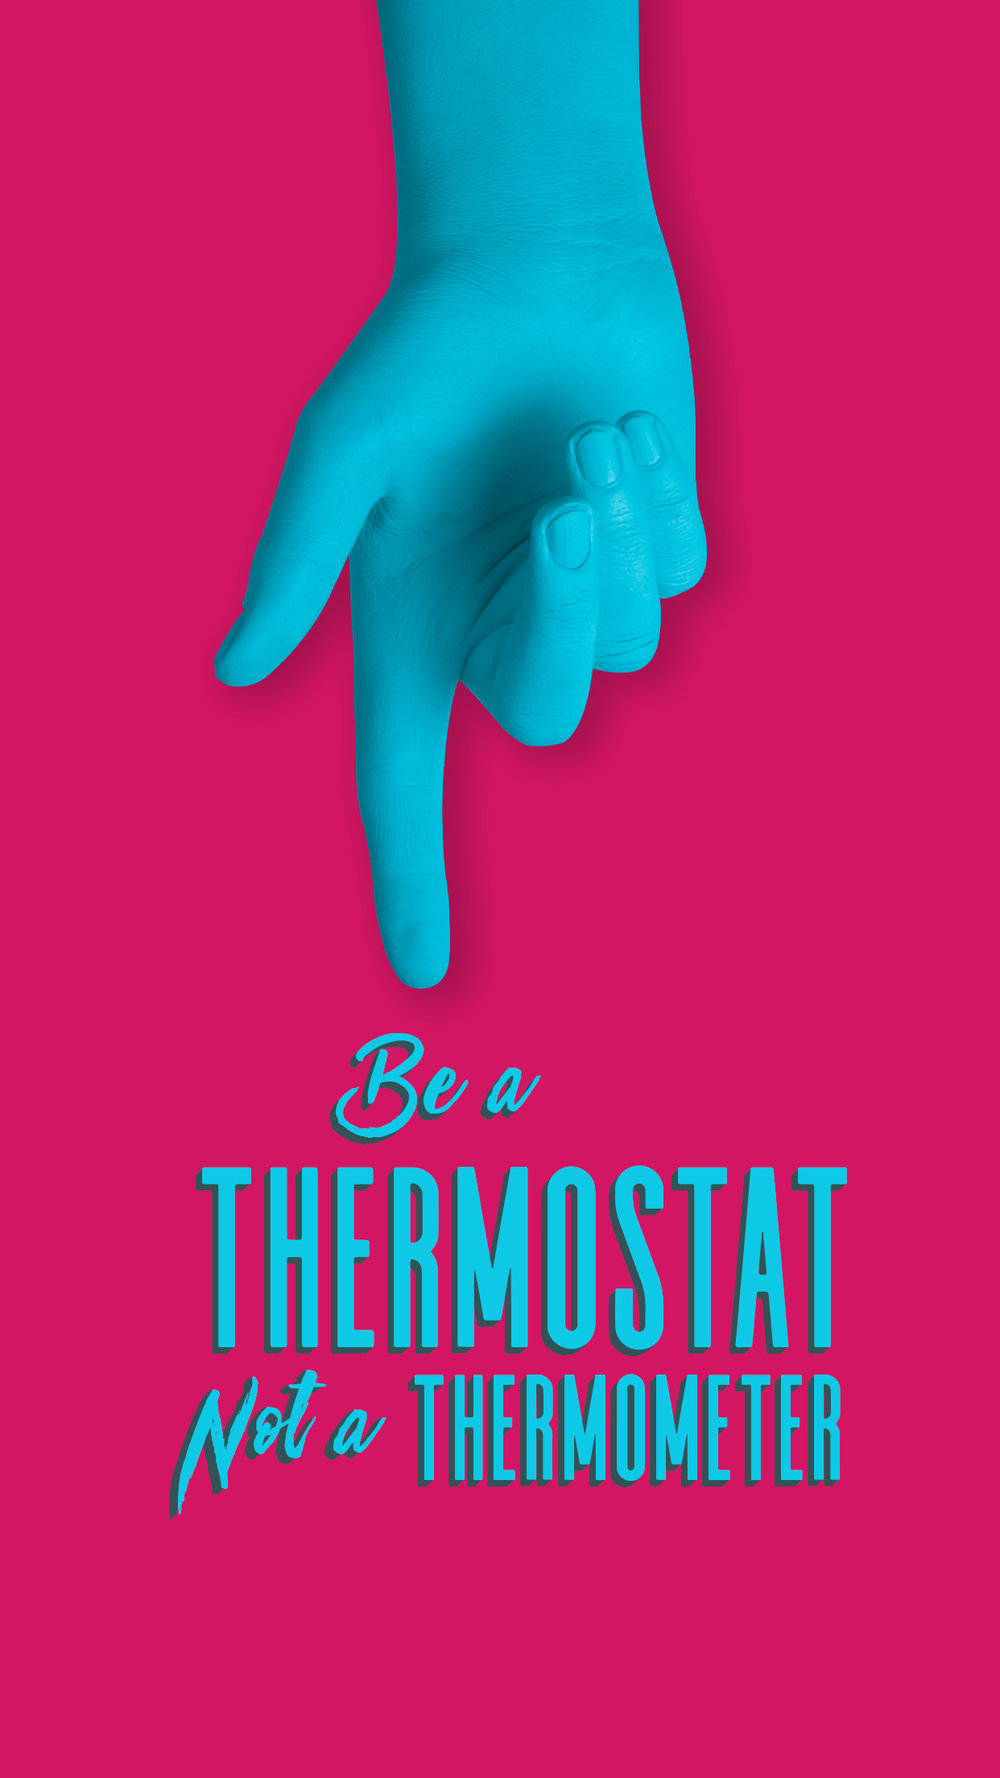 Thermostat_Wallpaper.jpg